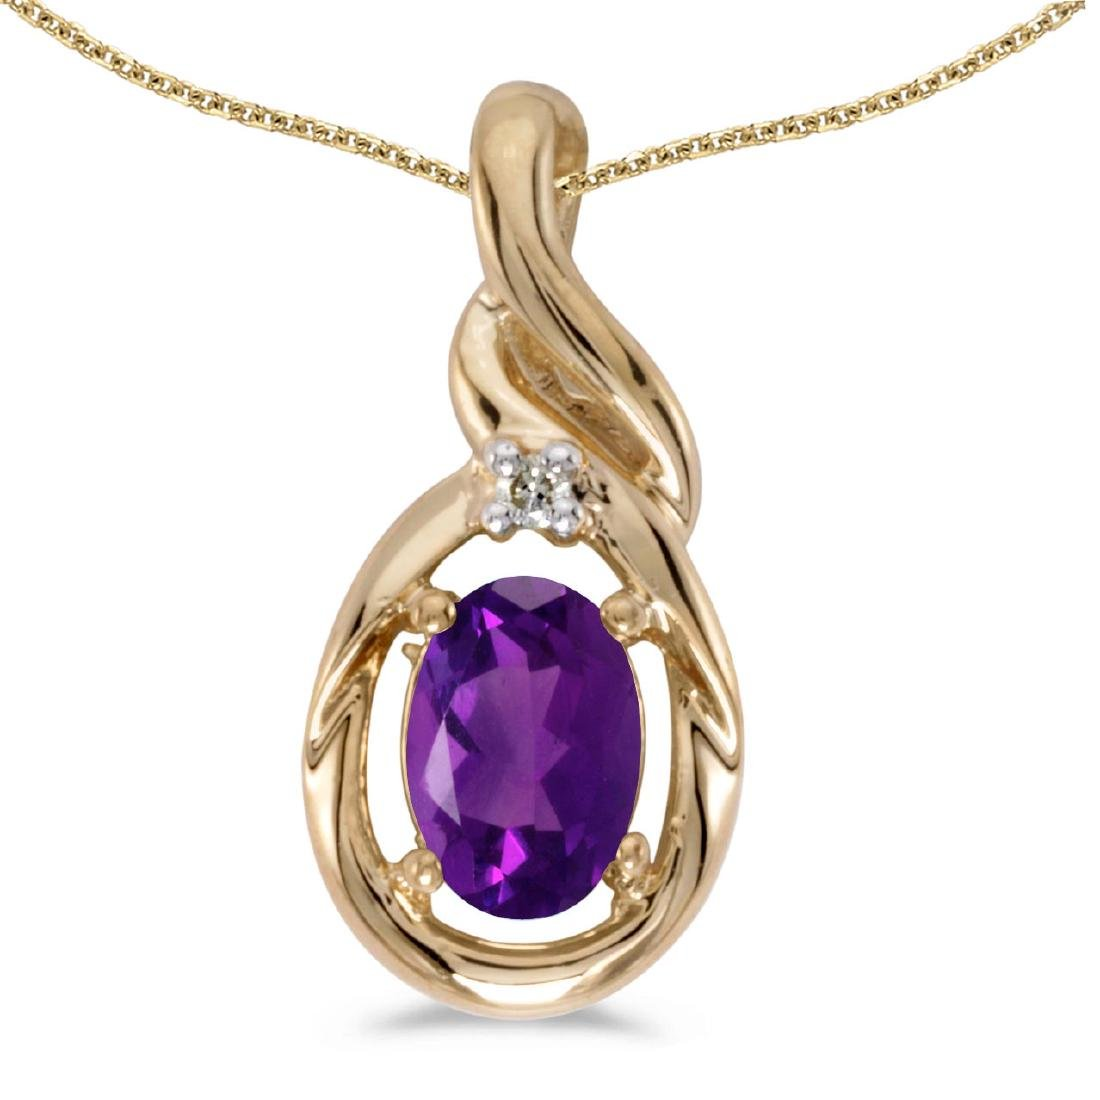 Certified 14k Yellow Gold Oval Amethyst And Diamond Pen